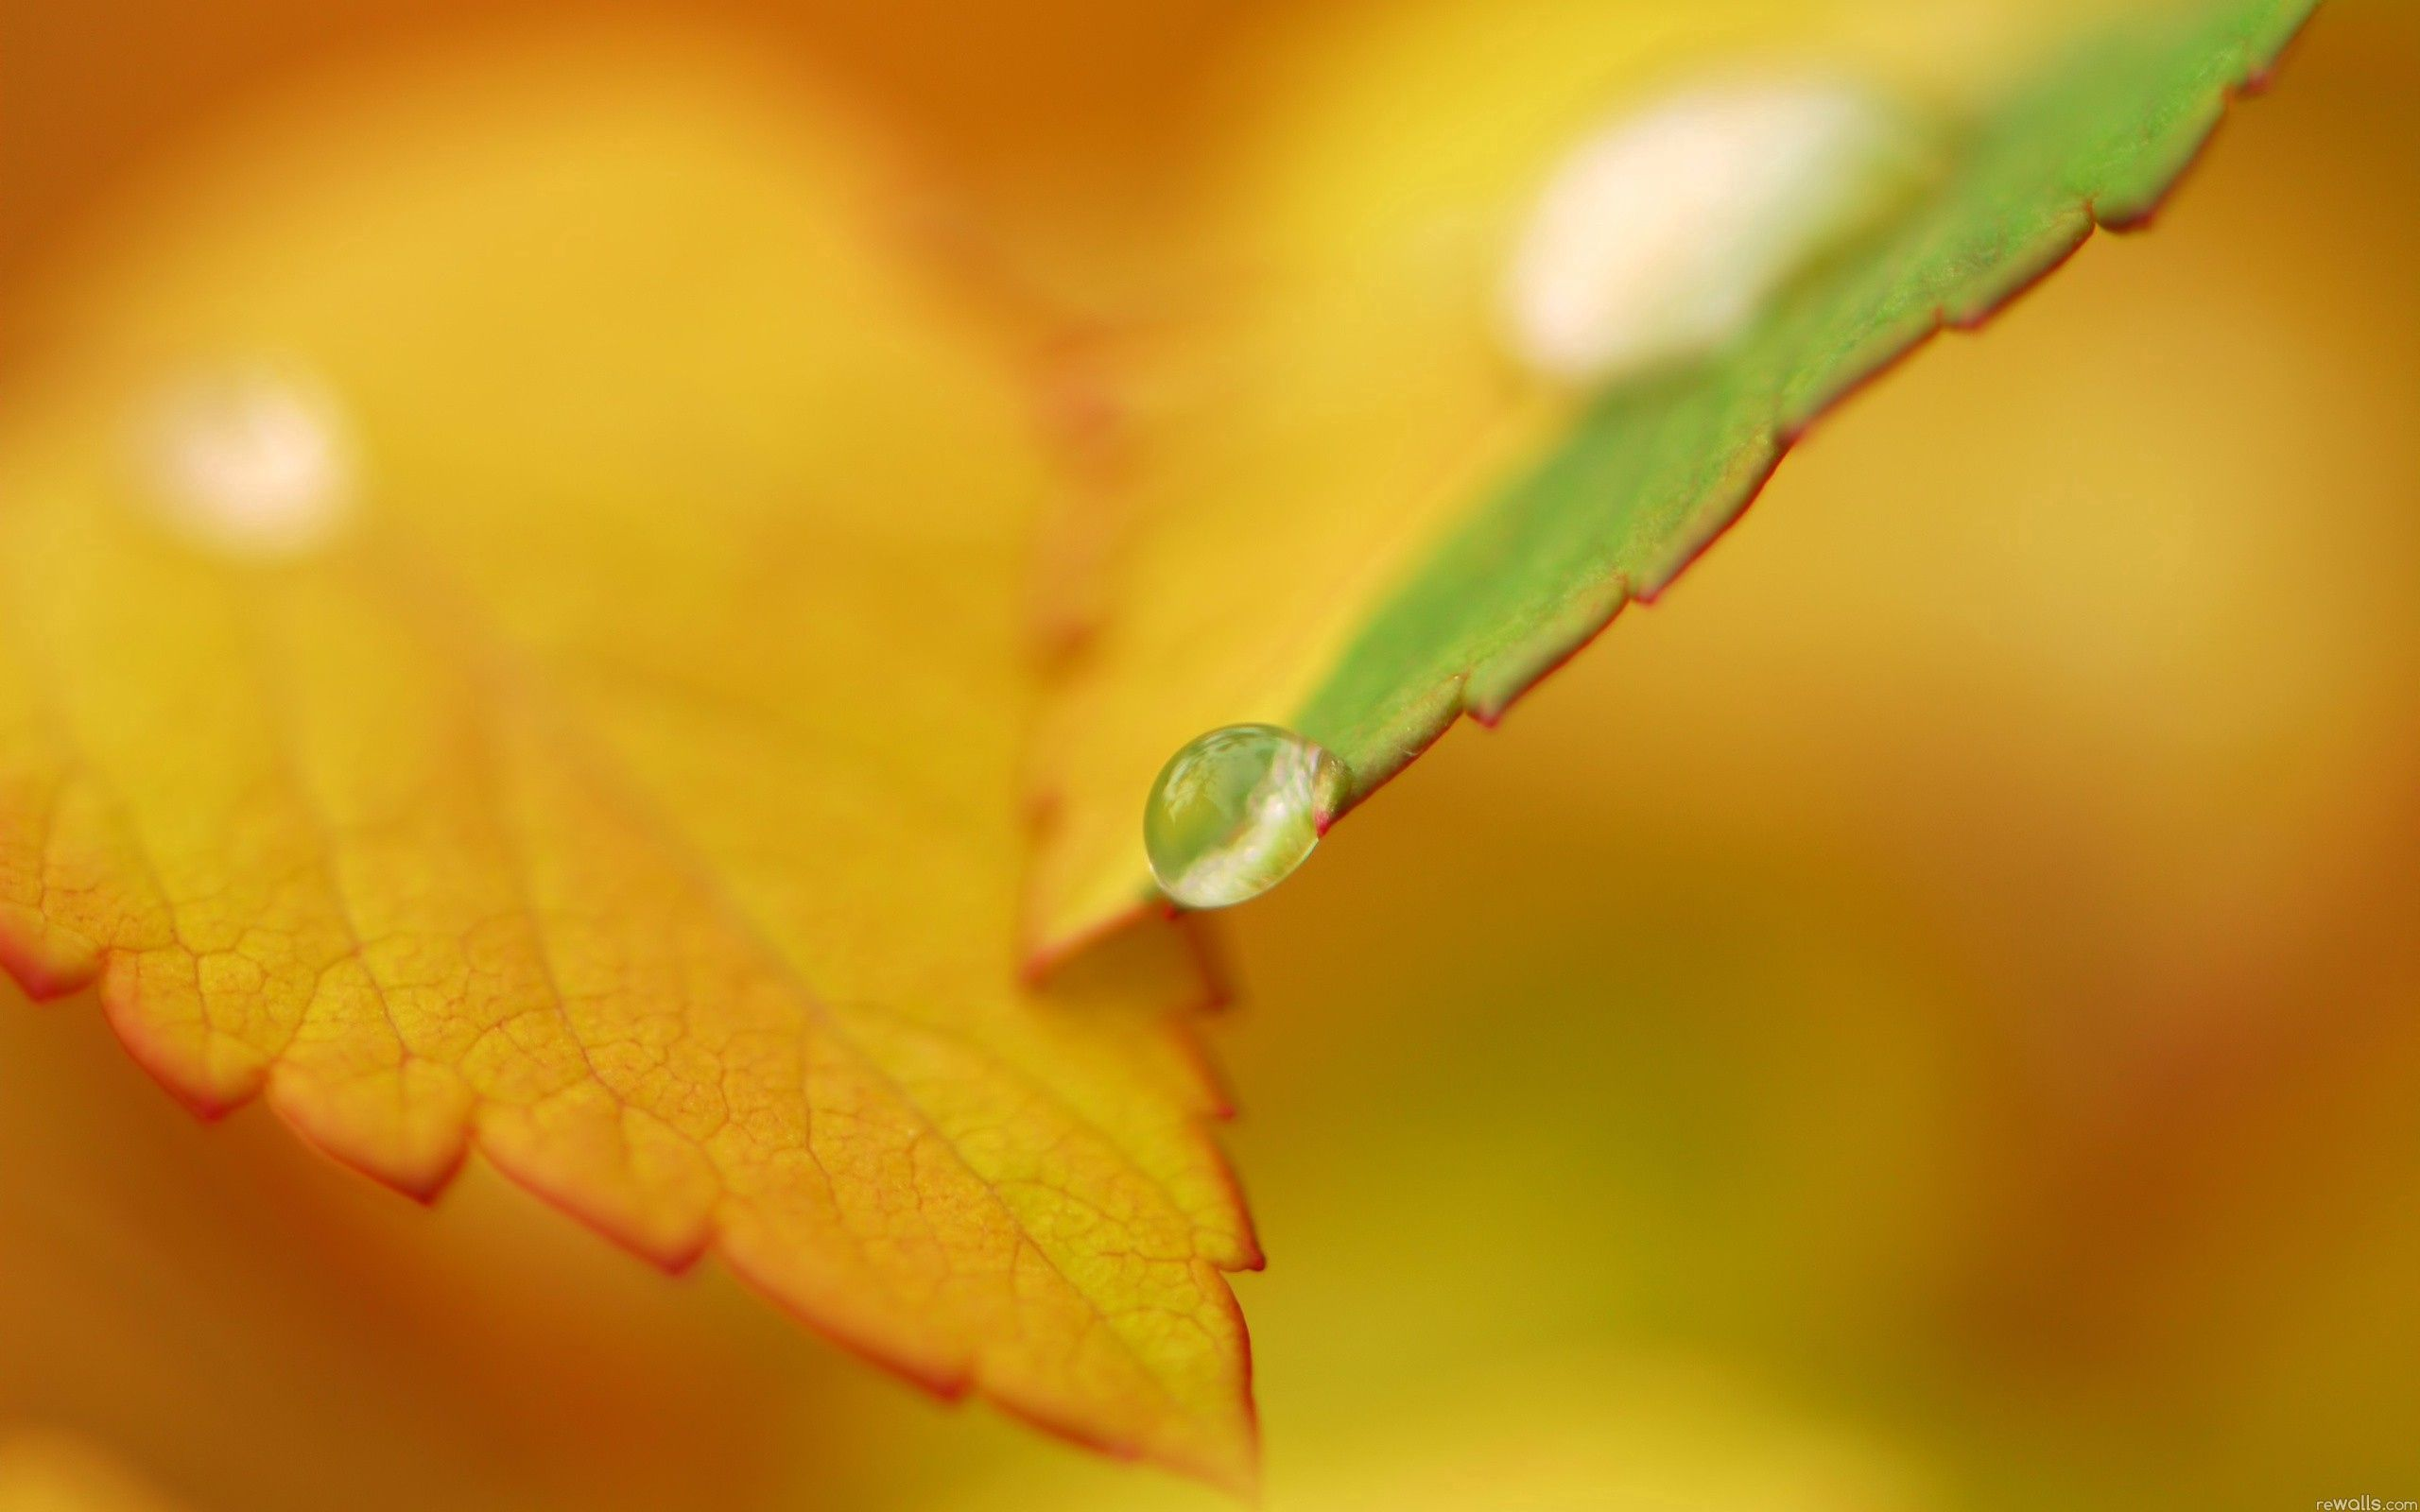 82929 download wallpaper Macro, Sheet, Leaf, Autumn, Drops screensavers and pictures for free